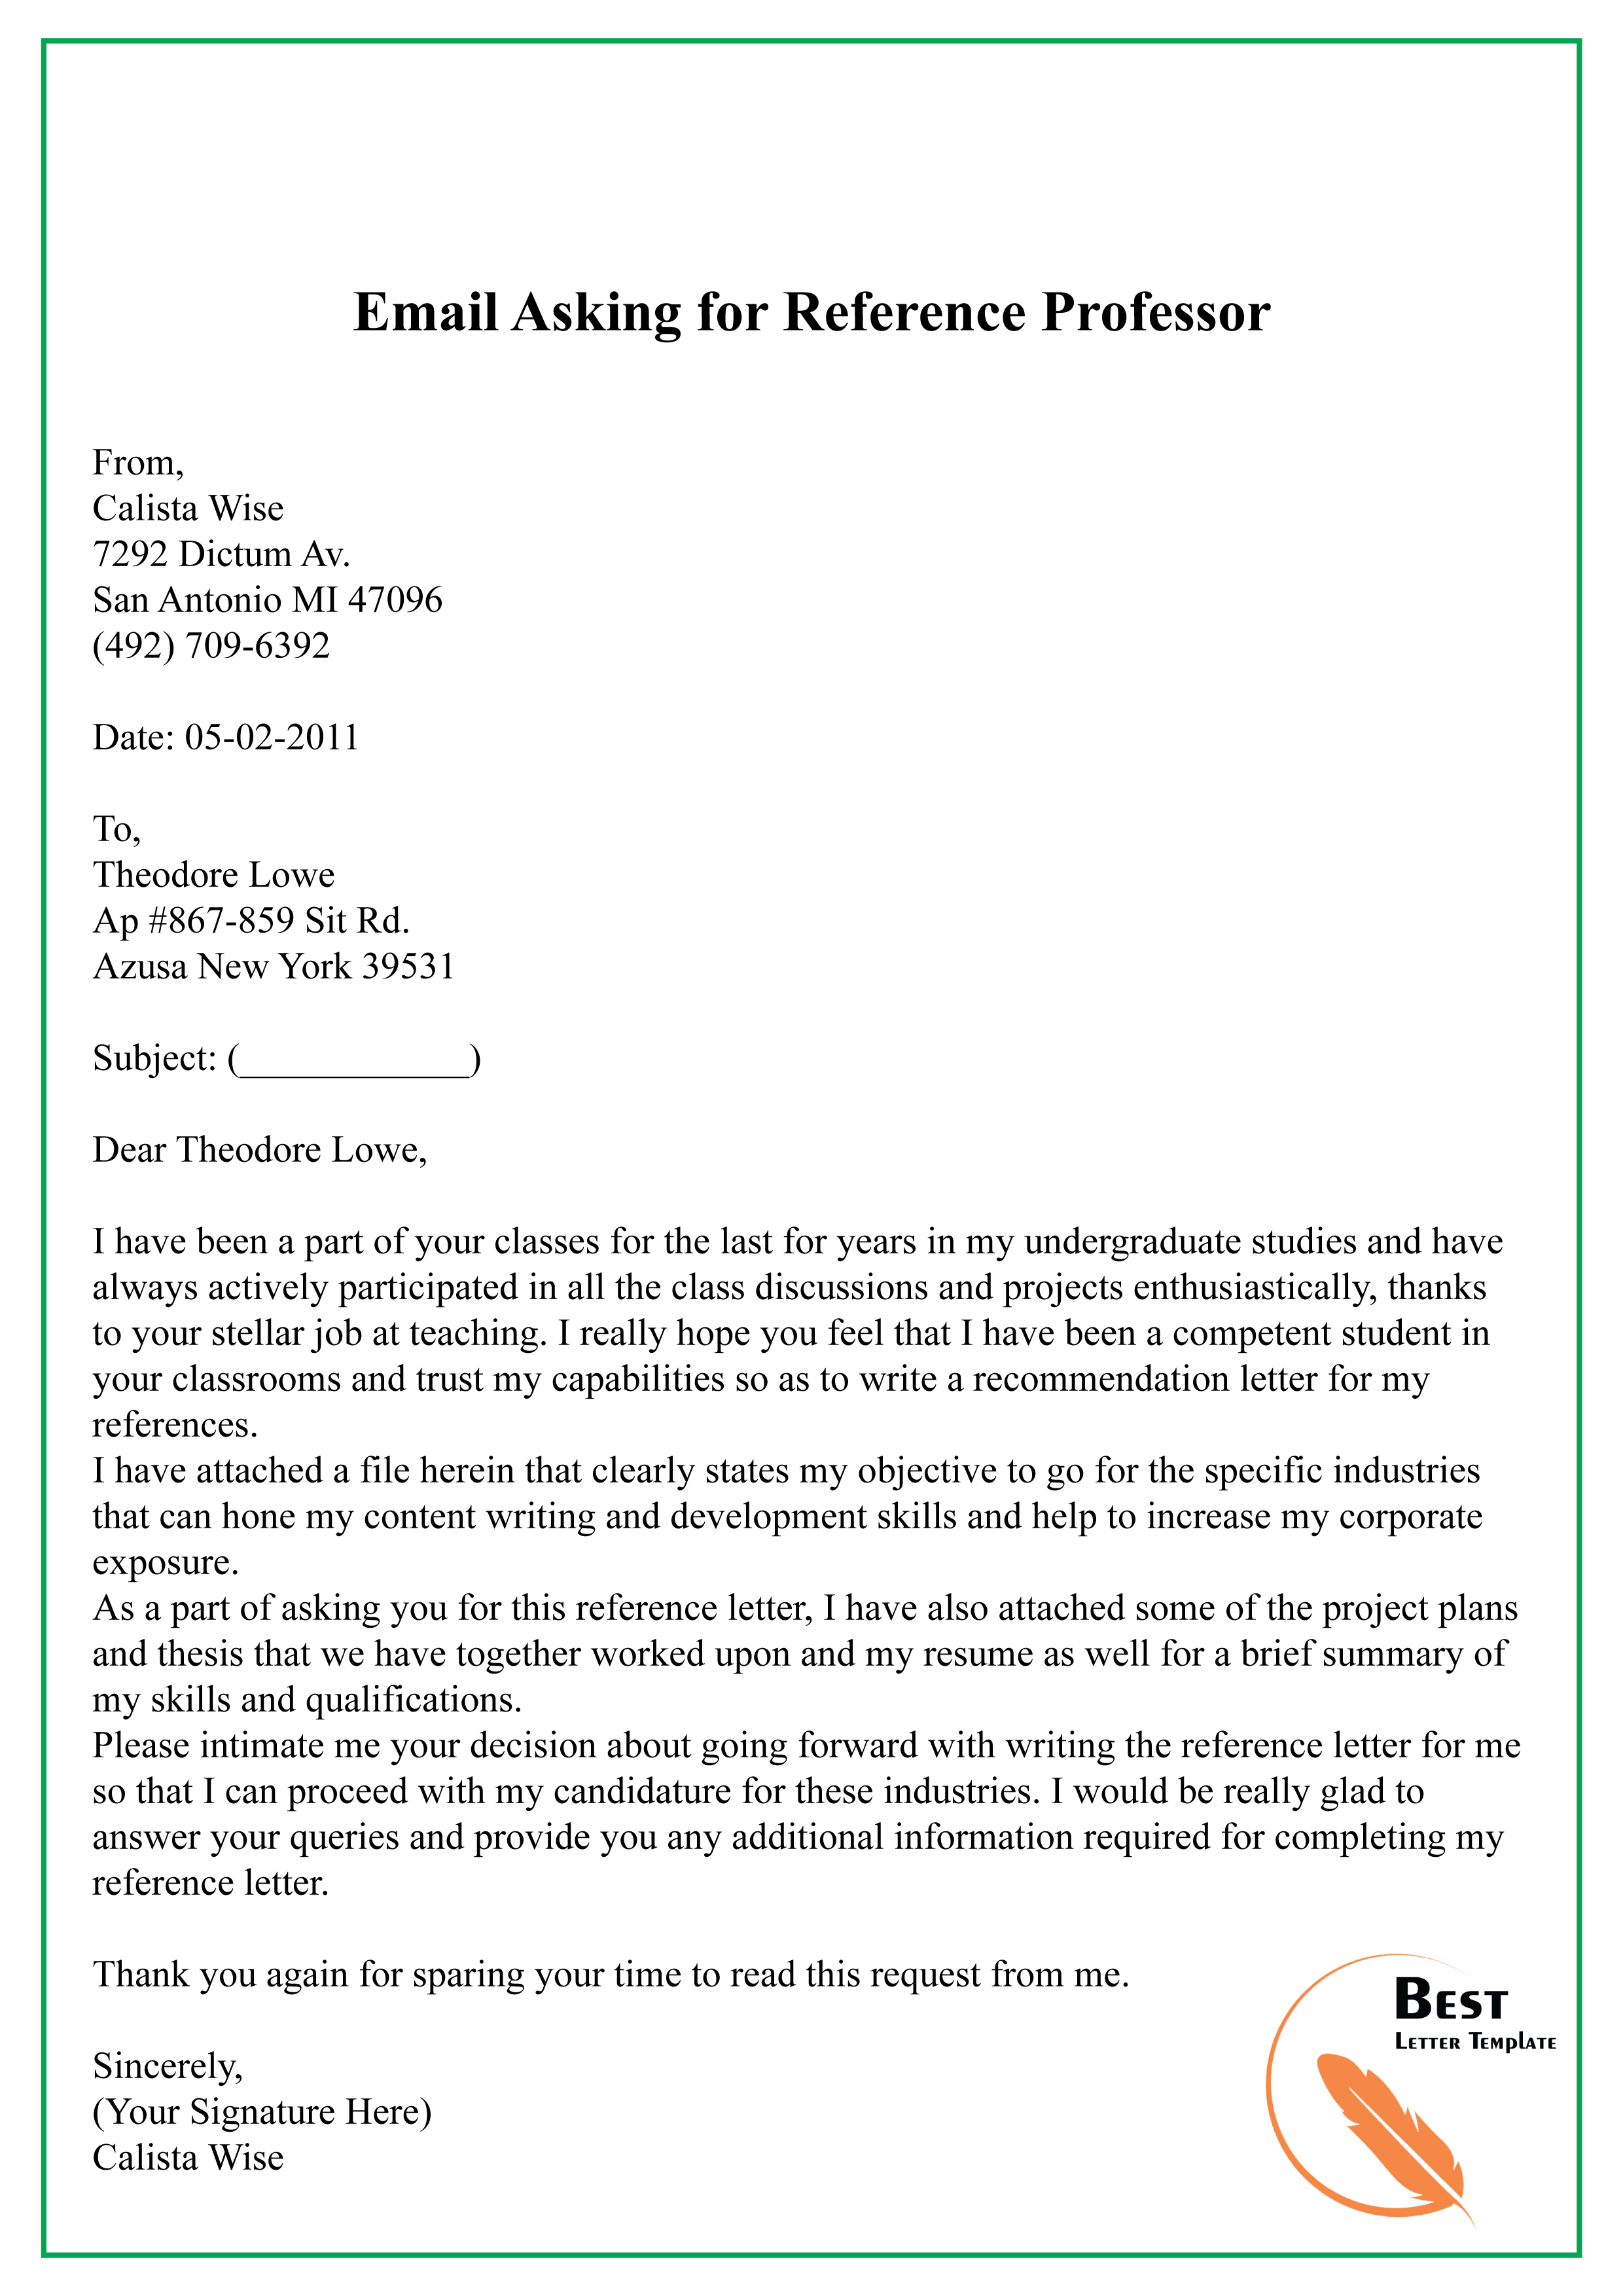 Request Letter Of Recommendation From Professor from bestlettertemplate.com